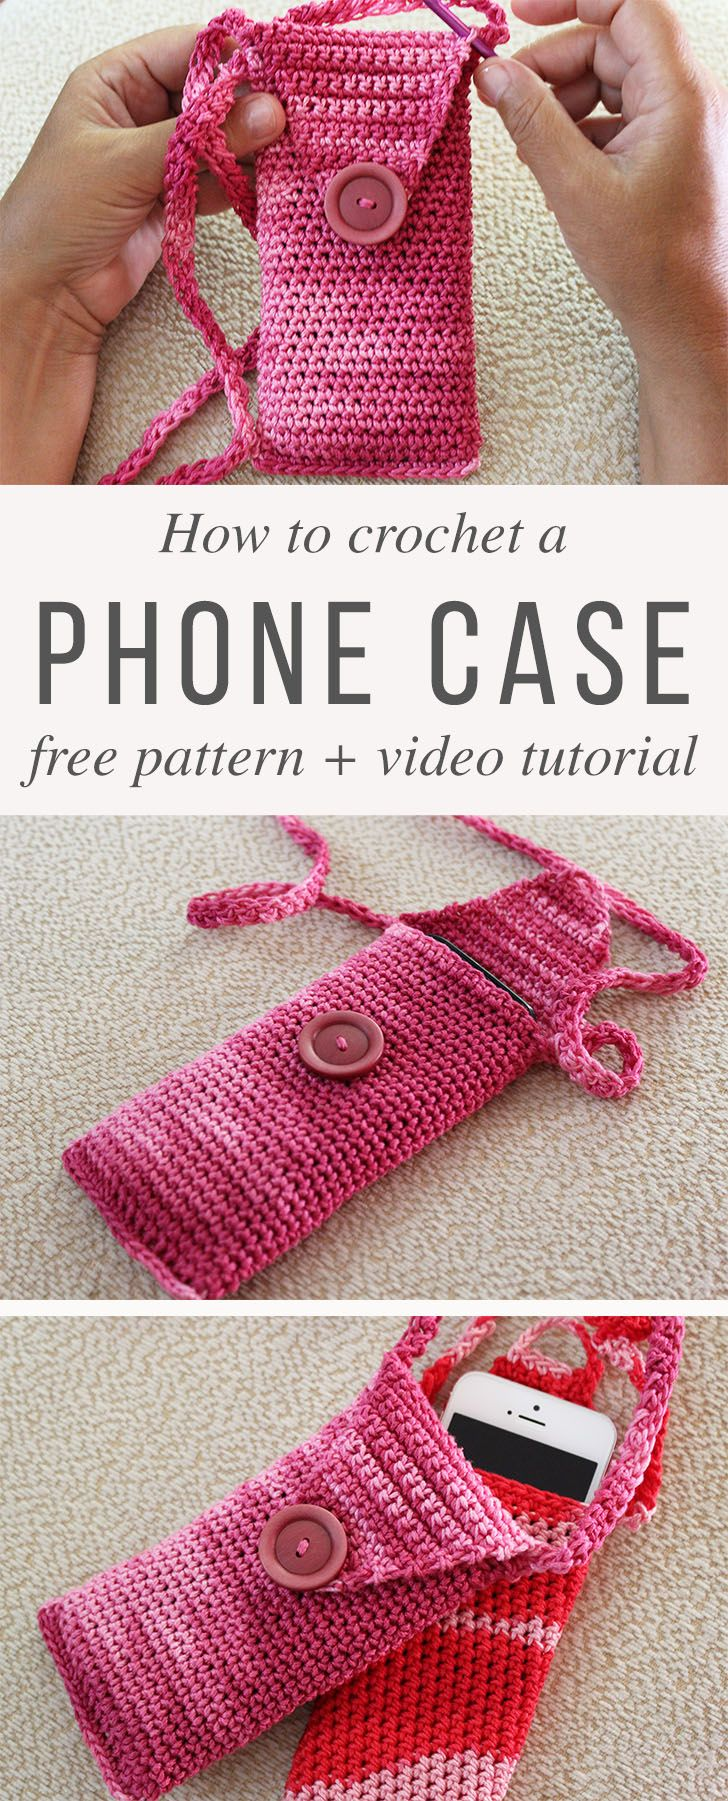 Fancy phone case crochet free pattern and video tutorial crochet today i want to share with you these fancy phone cases that i made using the beautiful bean stitch i made the free crochet pattern and video tutorial of bankloansurffo Image collections